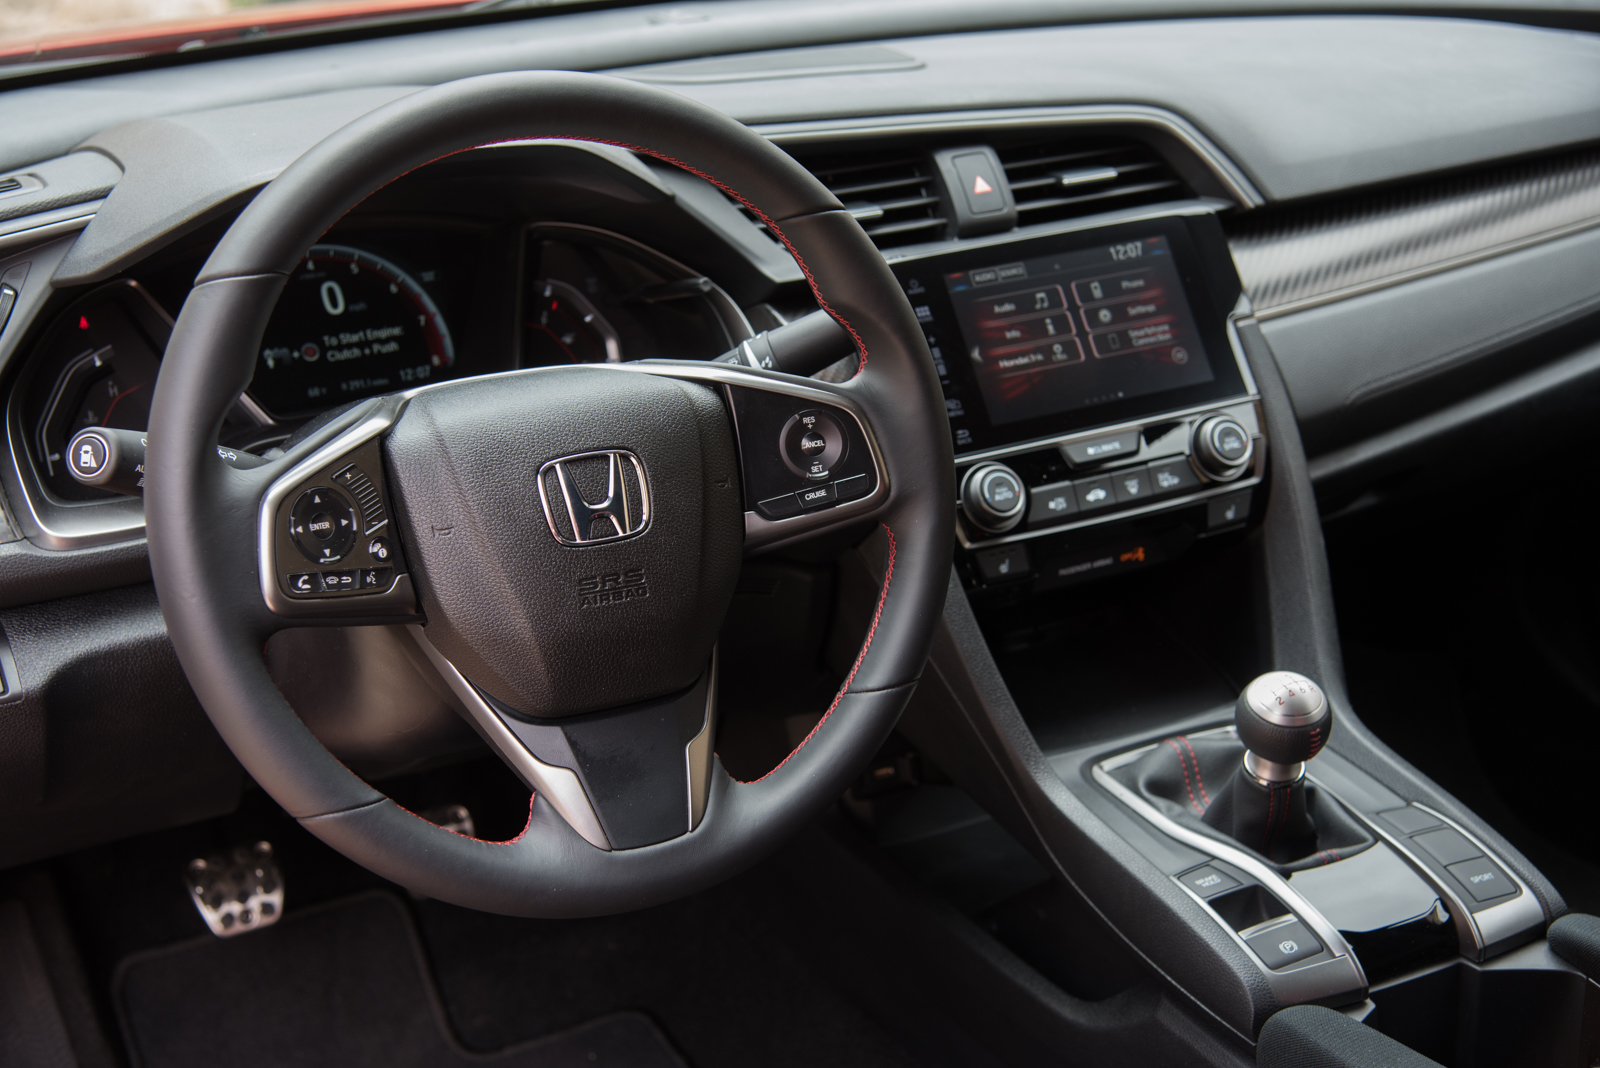 2017 Honda Civic Si Interior 02